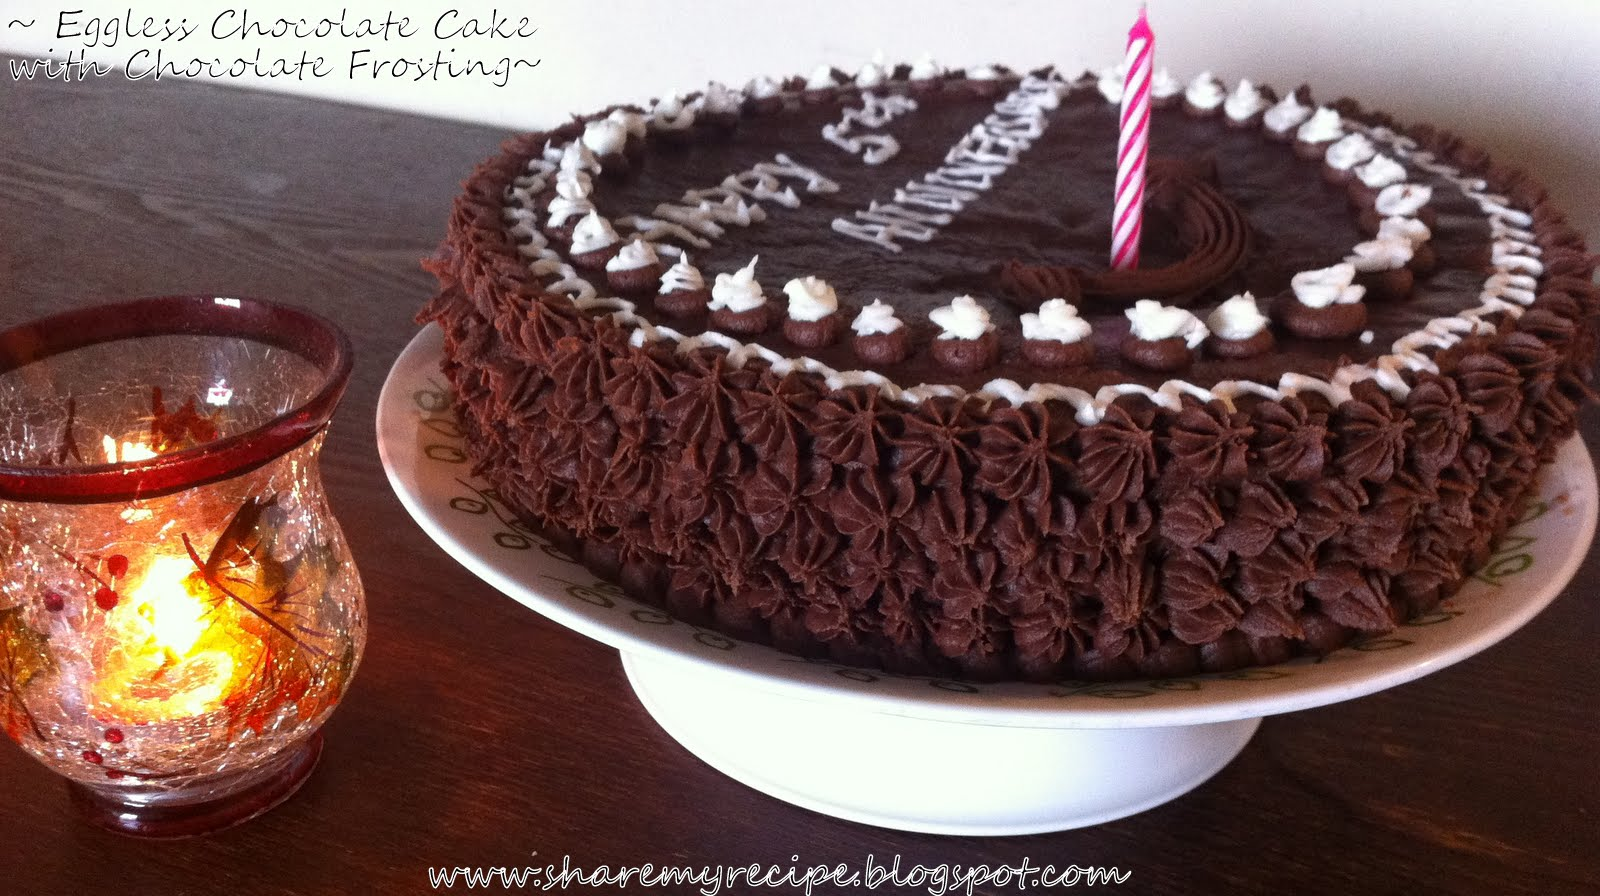 Chocolate iced cake recipe